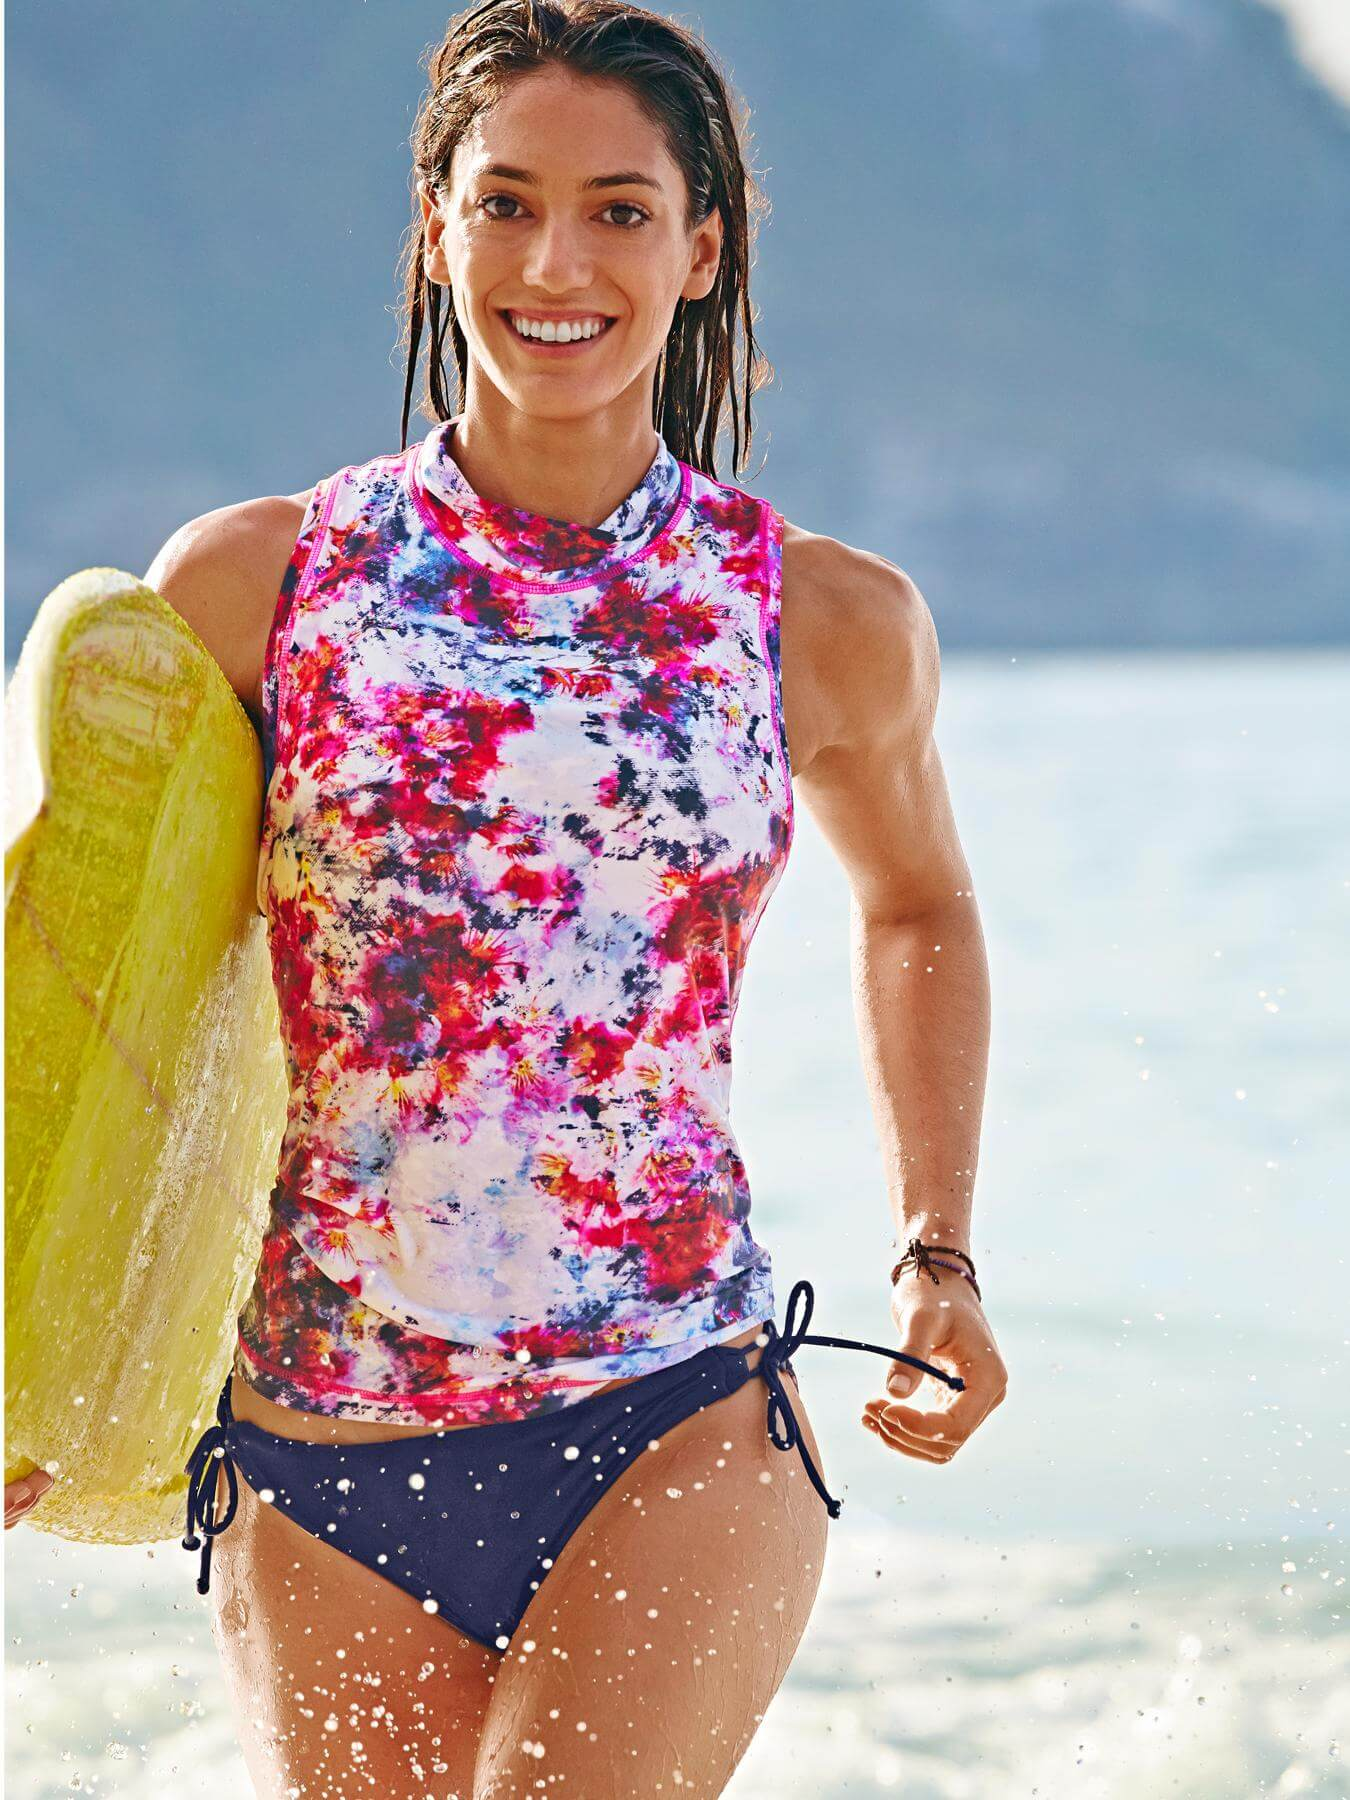 Allison Stokke Beautifull